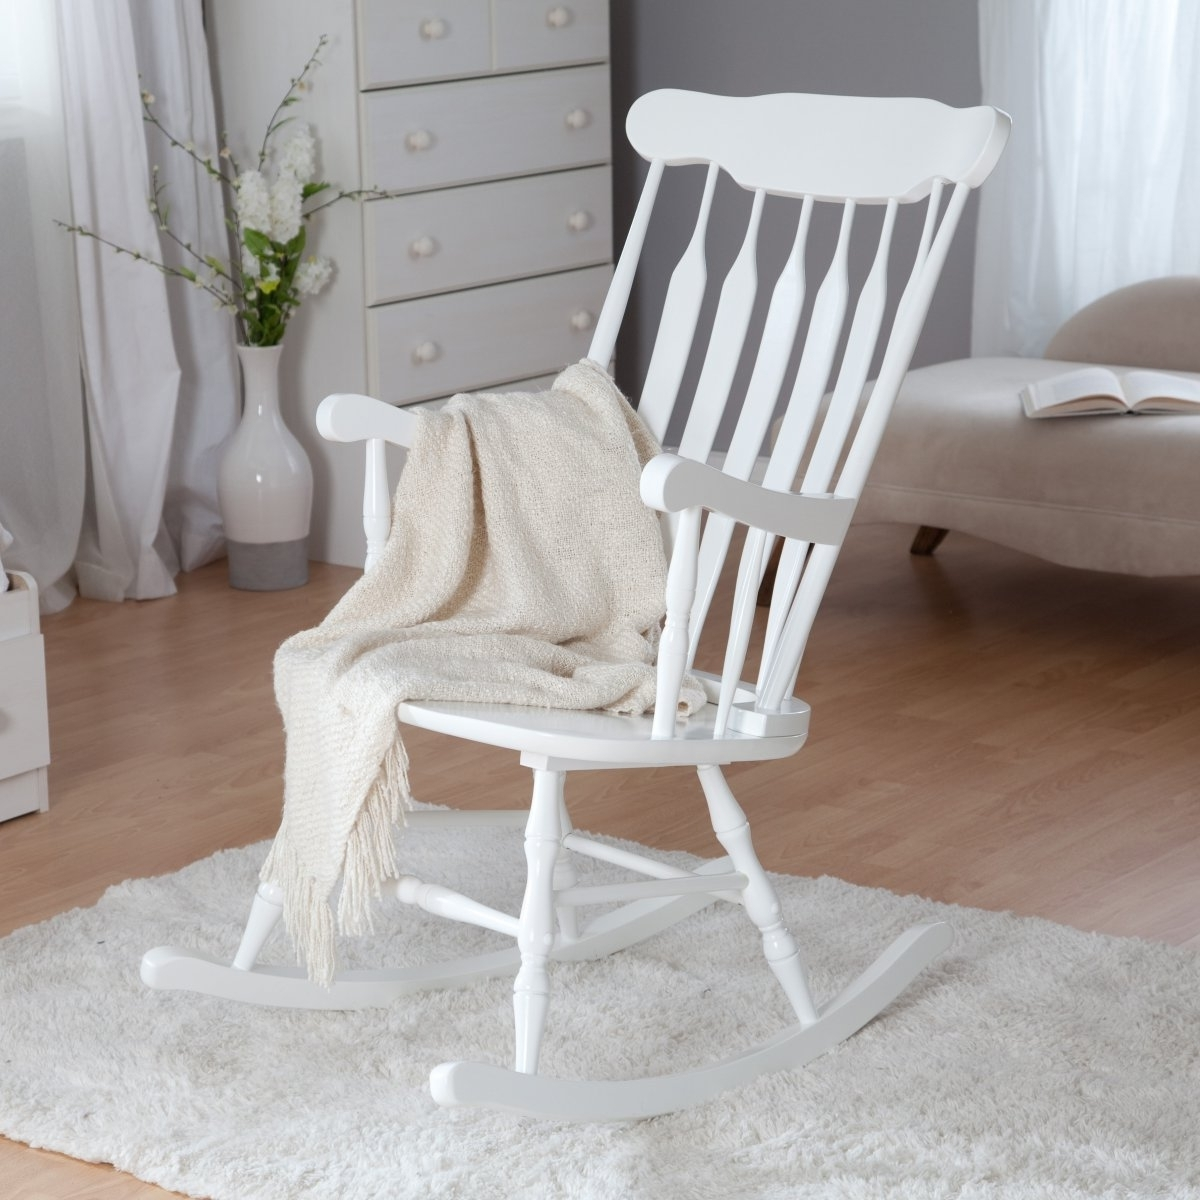 Best And Newest Brilliant Wood Rocking Chair For Nursery With Additional Small Home Within Rocking Chairs For Nursery (View 1 of 20)